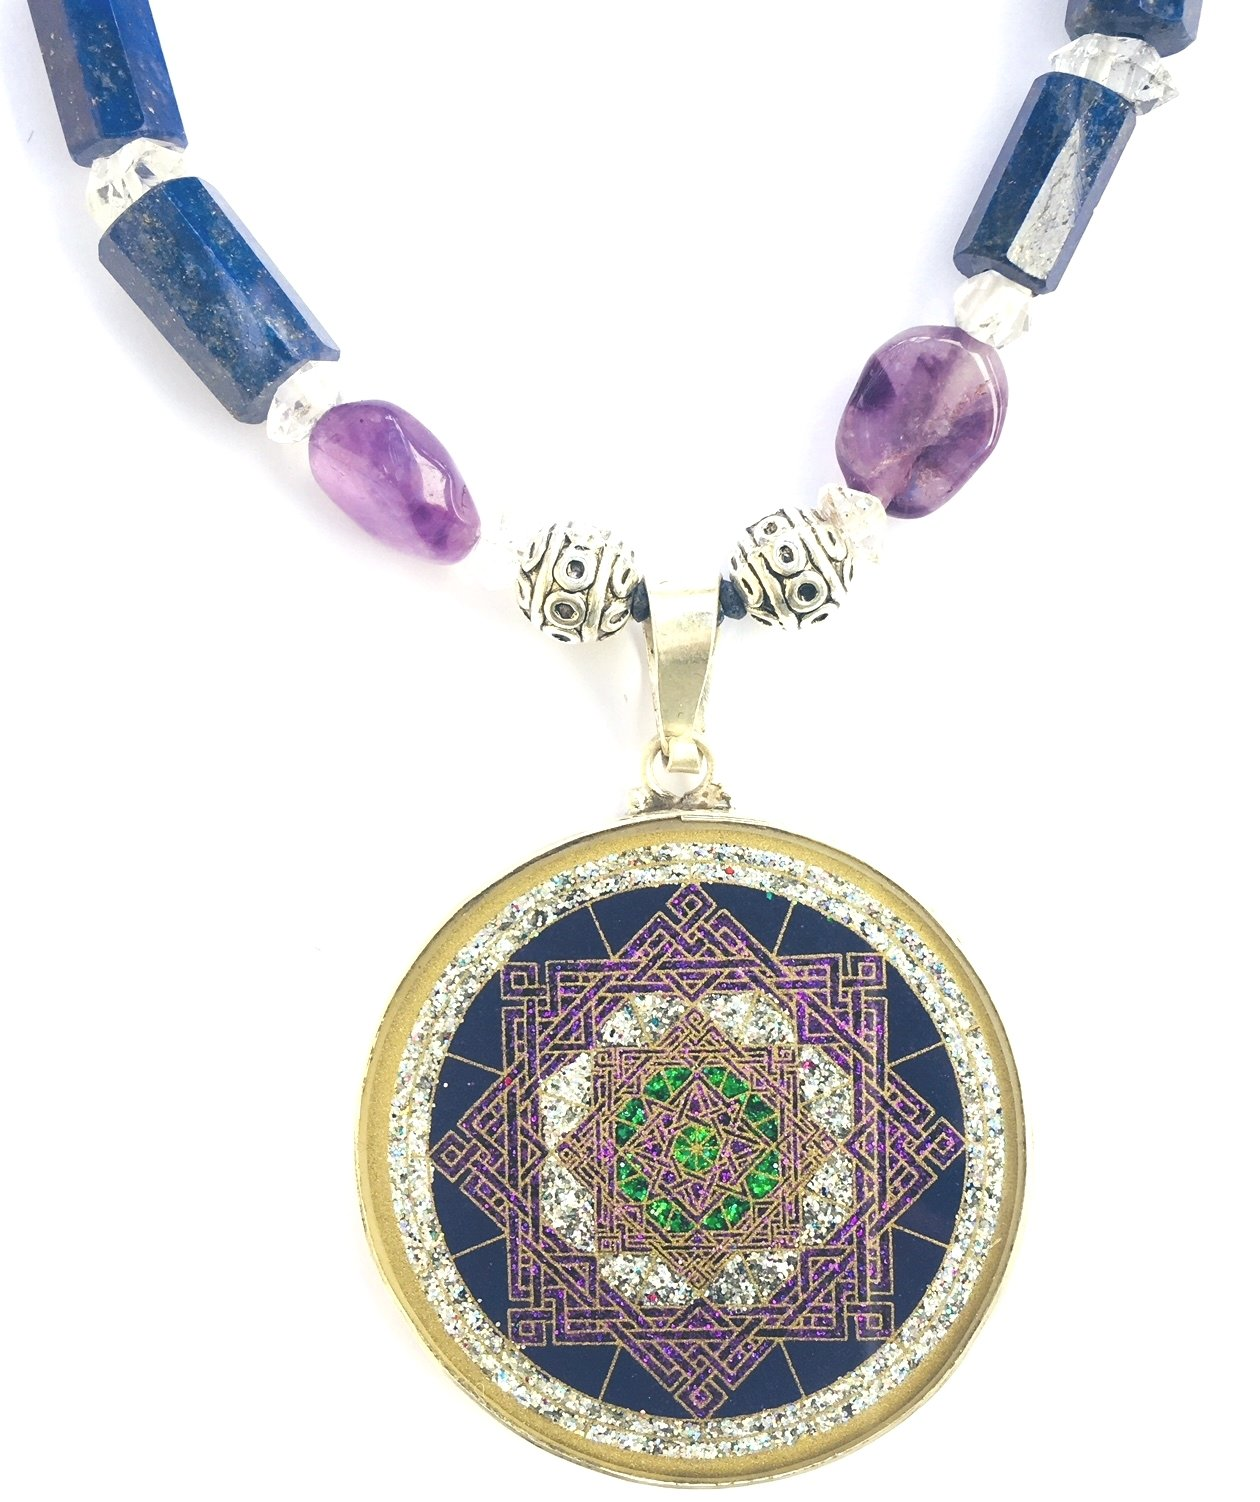 Star of Lakshmi pendant (lapis lazuli) and amethyst necklace by Scalar Heart Connection